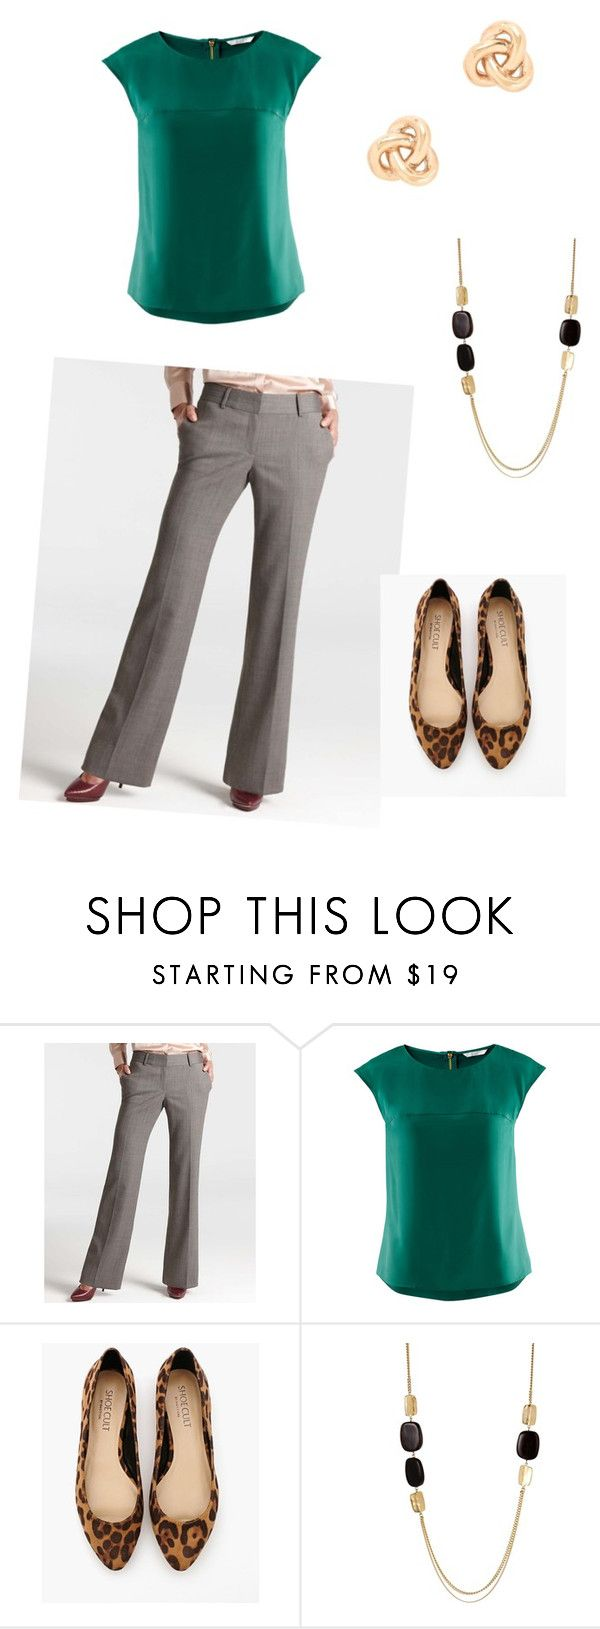 """""""Work Outfit #3"""" by littlekass ❤ liked on Polyvore featuring Ann Taylor, H&M, Shoe Cult, Kenneth Cole and J.Crew"""